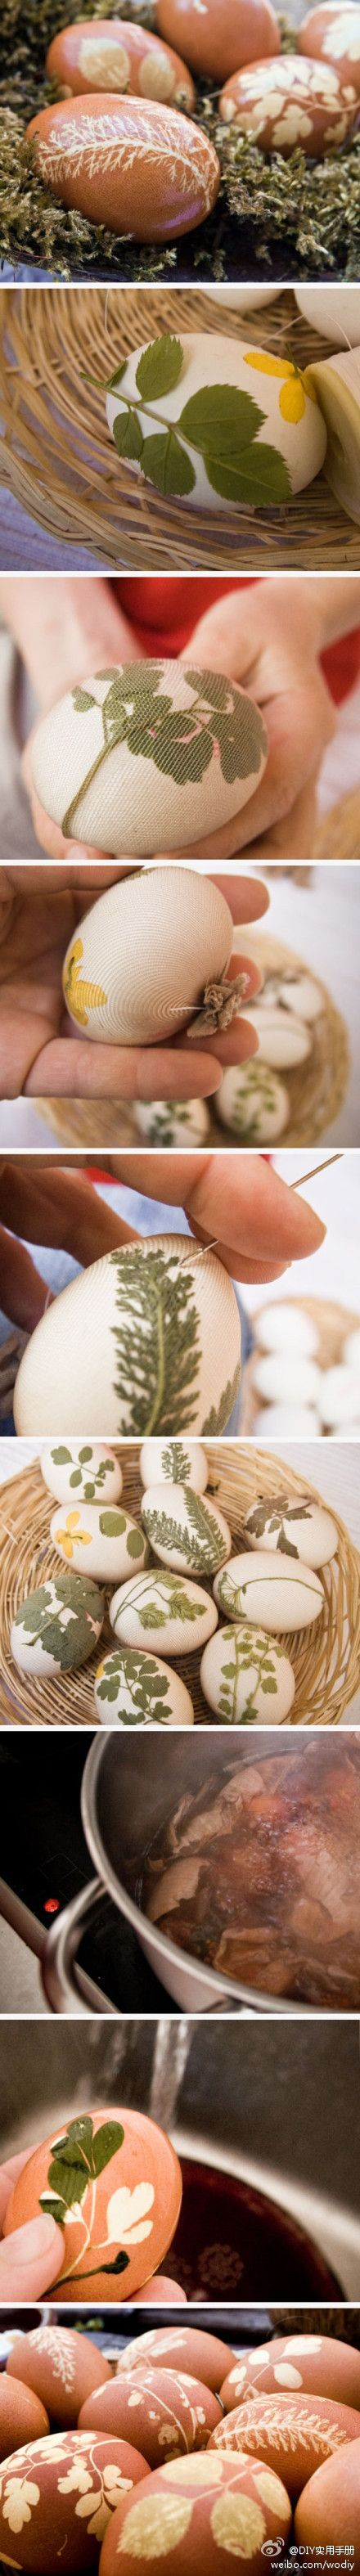 Dying eggs with onion skins and ferns. Picture tutorial.